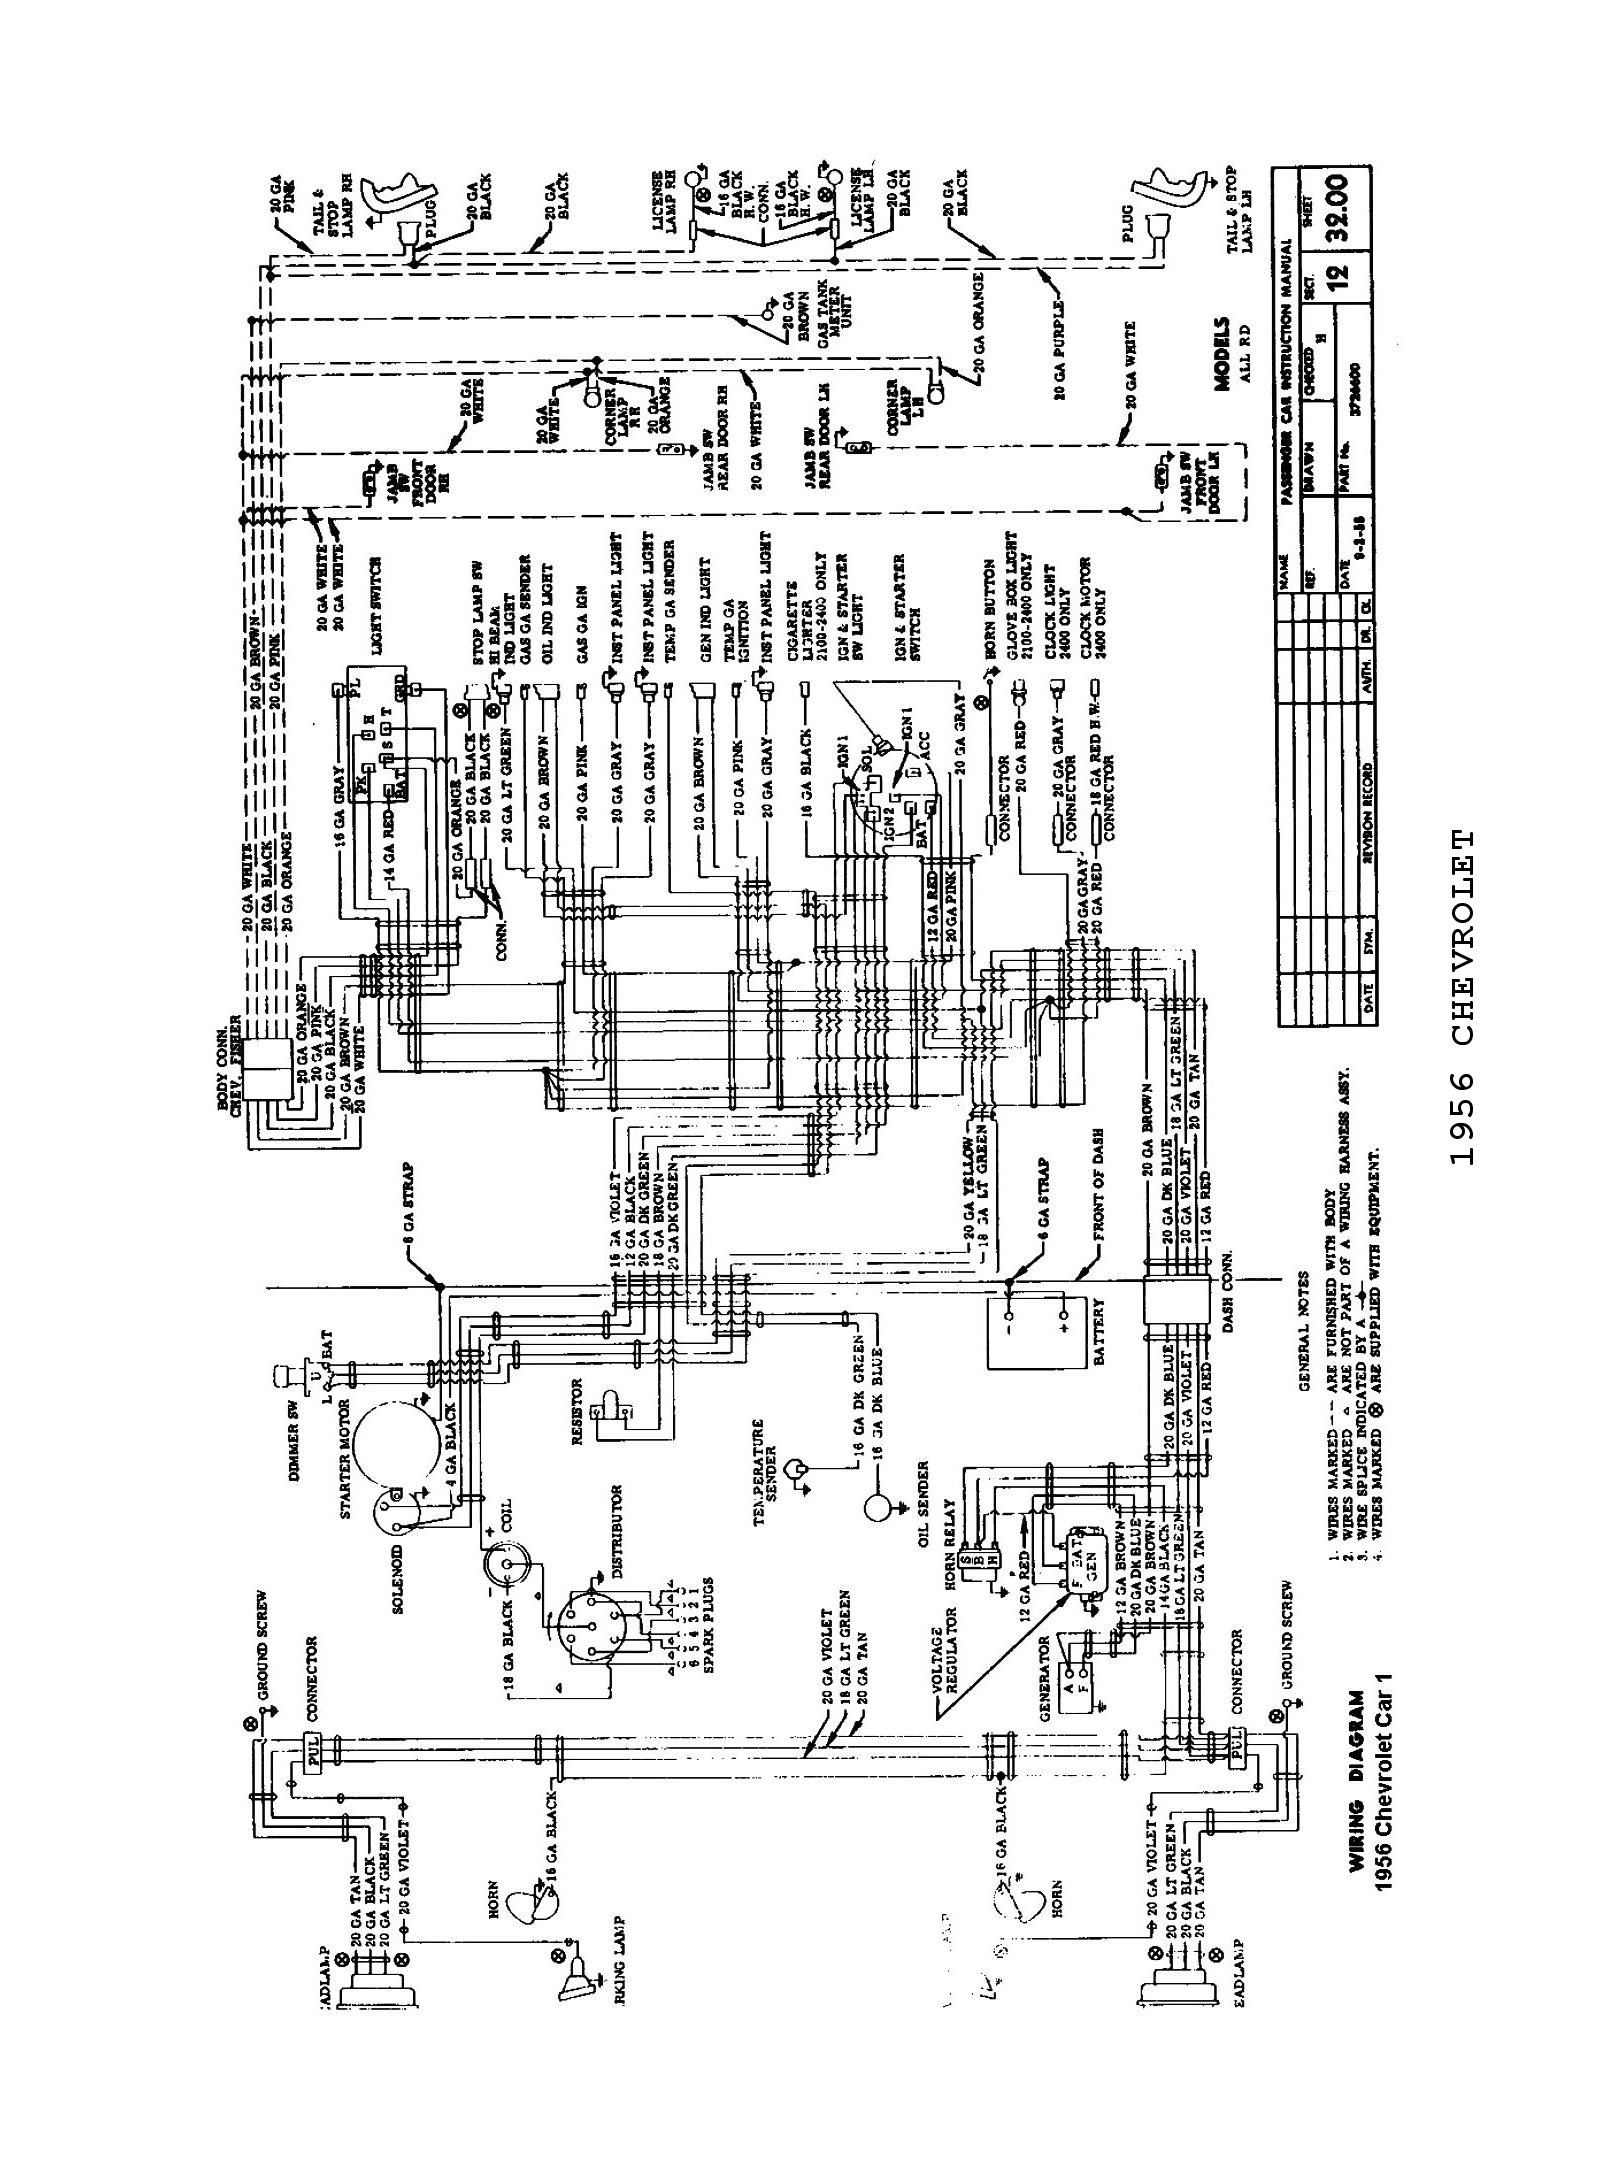 wiring diagrams for chevy trucks the wiring diagram 1959 chevy ignition wiring 1959 printable wiring diagrams wiring diagram